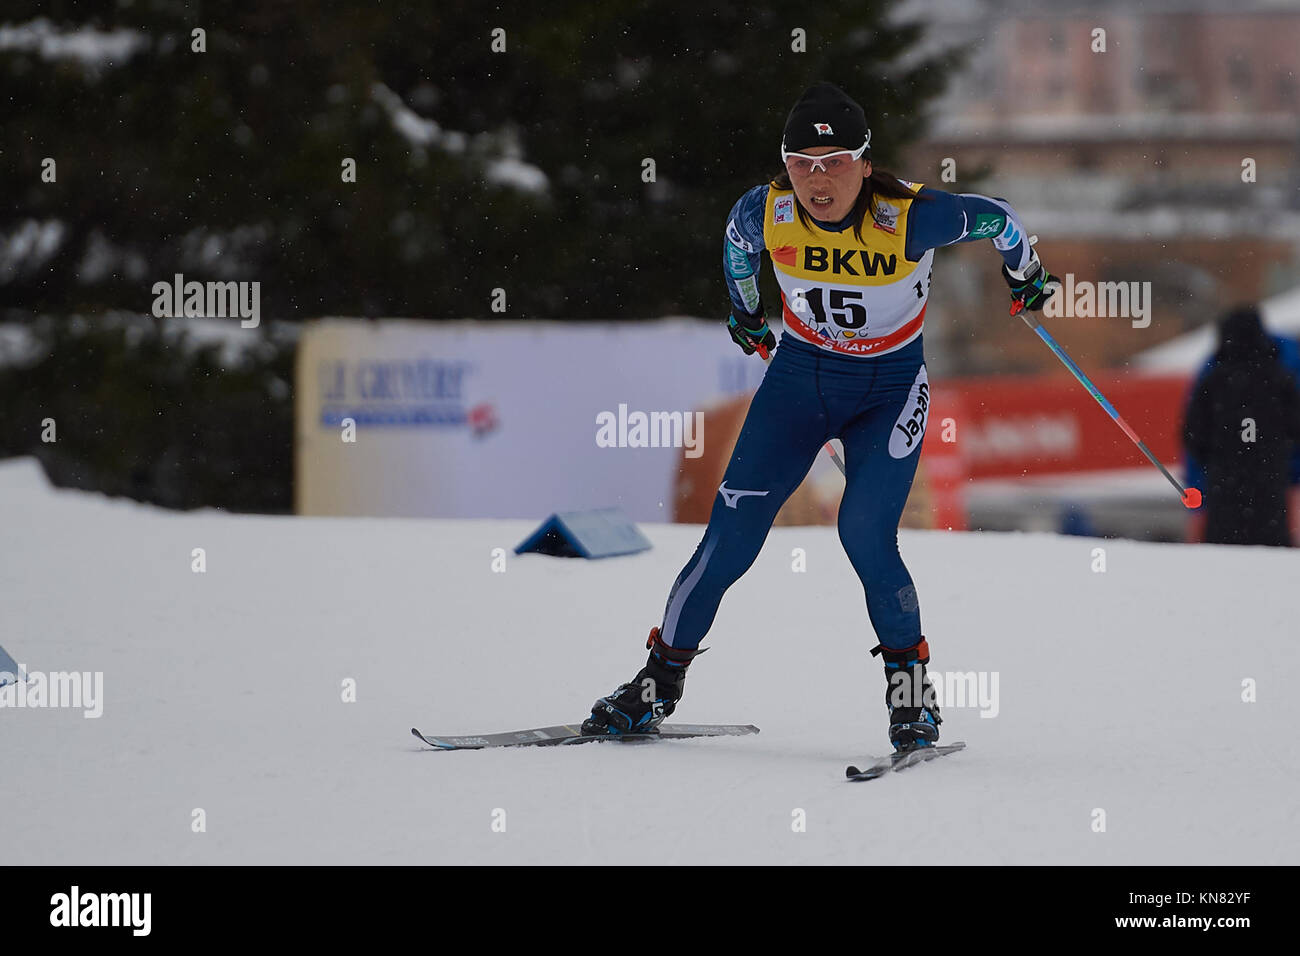 Davos, Switzerland, 10th December 2017. ISHIDA Masako (JAP) during the Ladies' 10 km F competition at the FIS Cross - Stock Image